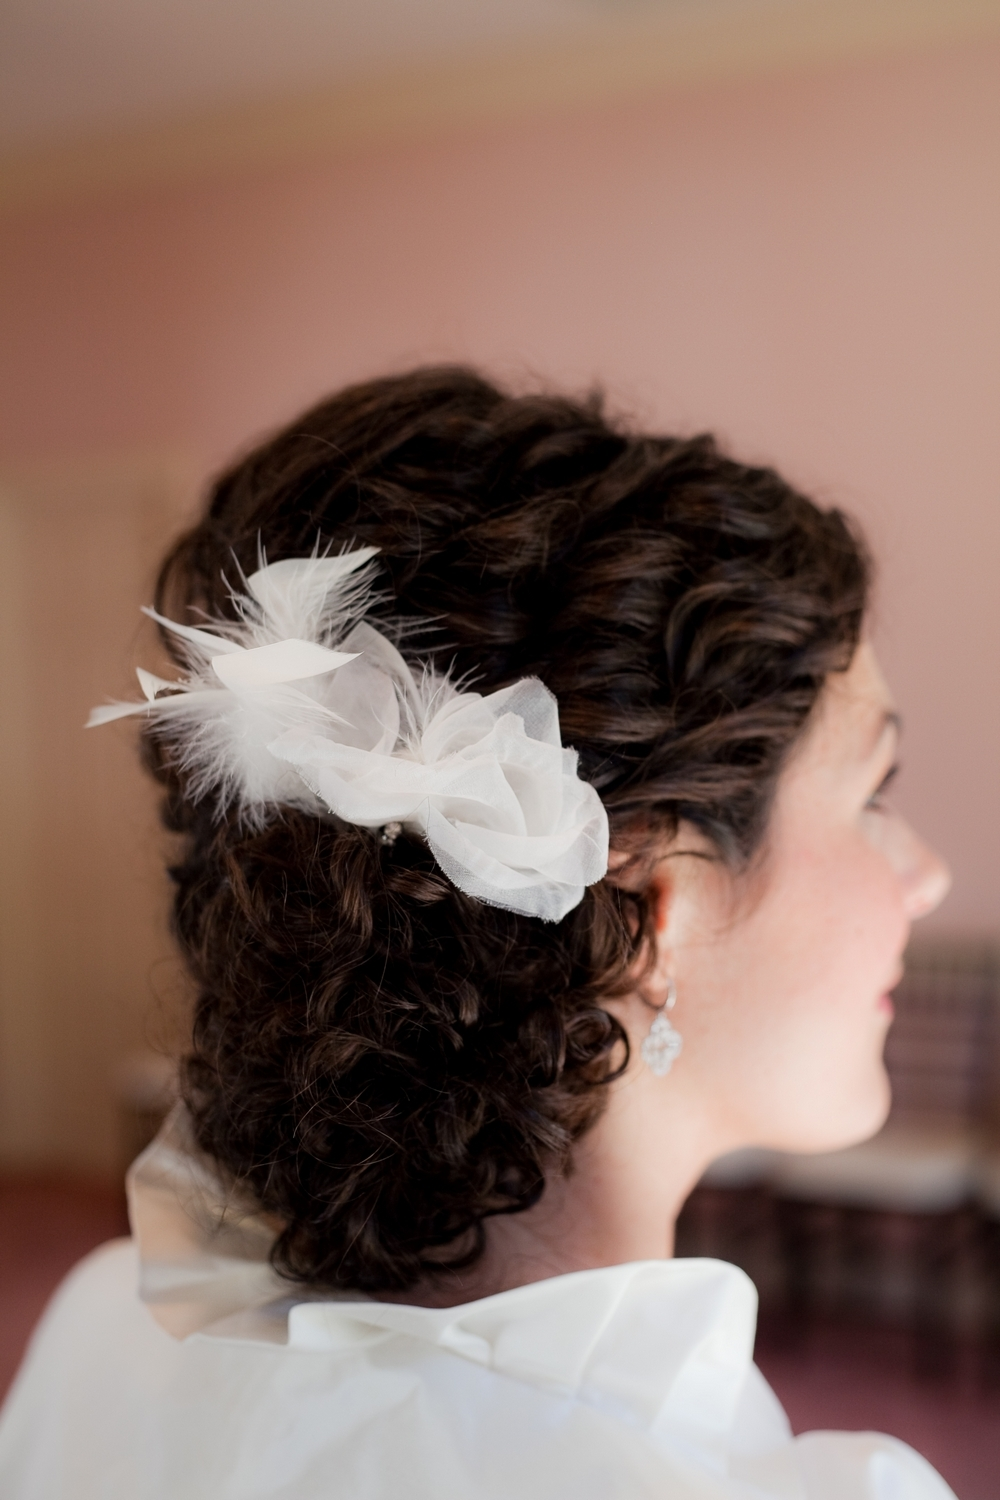 Wedding-hairstyles-updo-classic-curly-updo-with-flower-in-hair-ivory-high-neck-bolero-wedding-dress.full